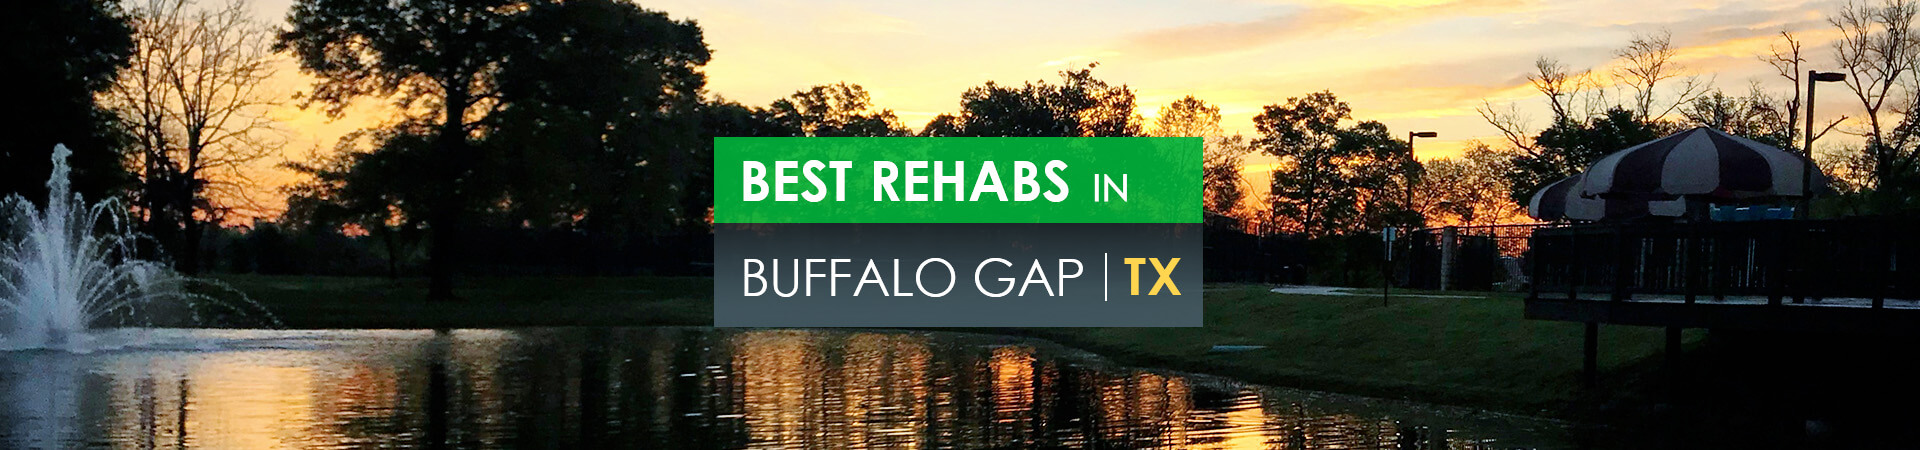 Best rehabs in Buffalo Gap, TX